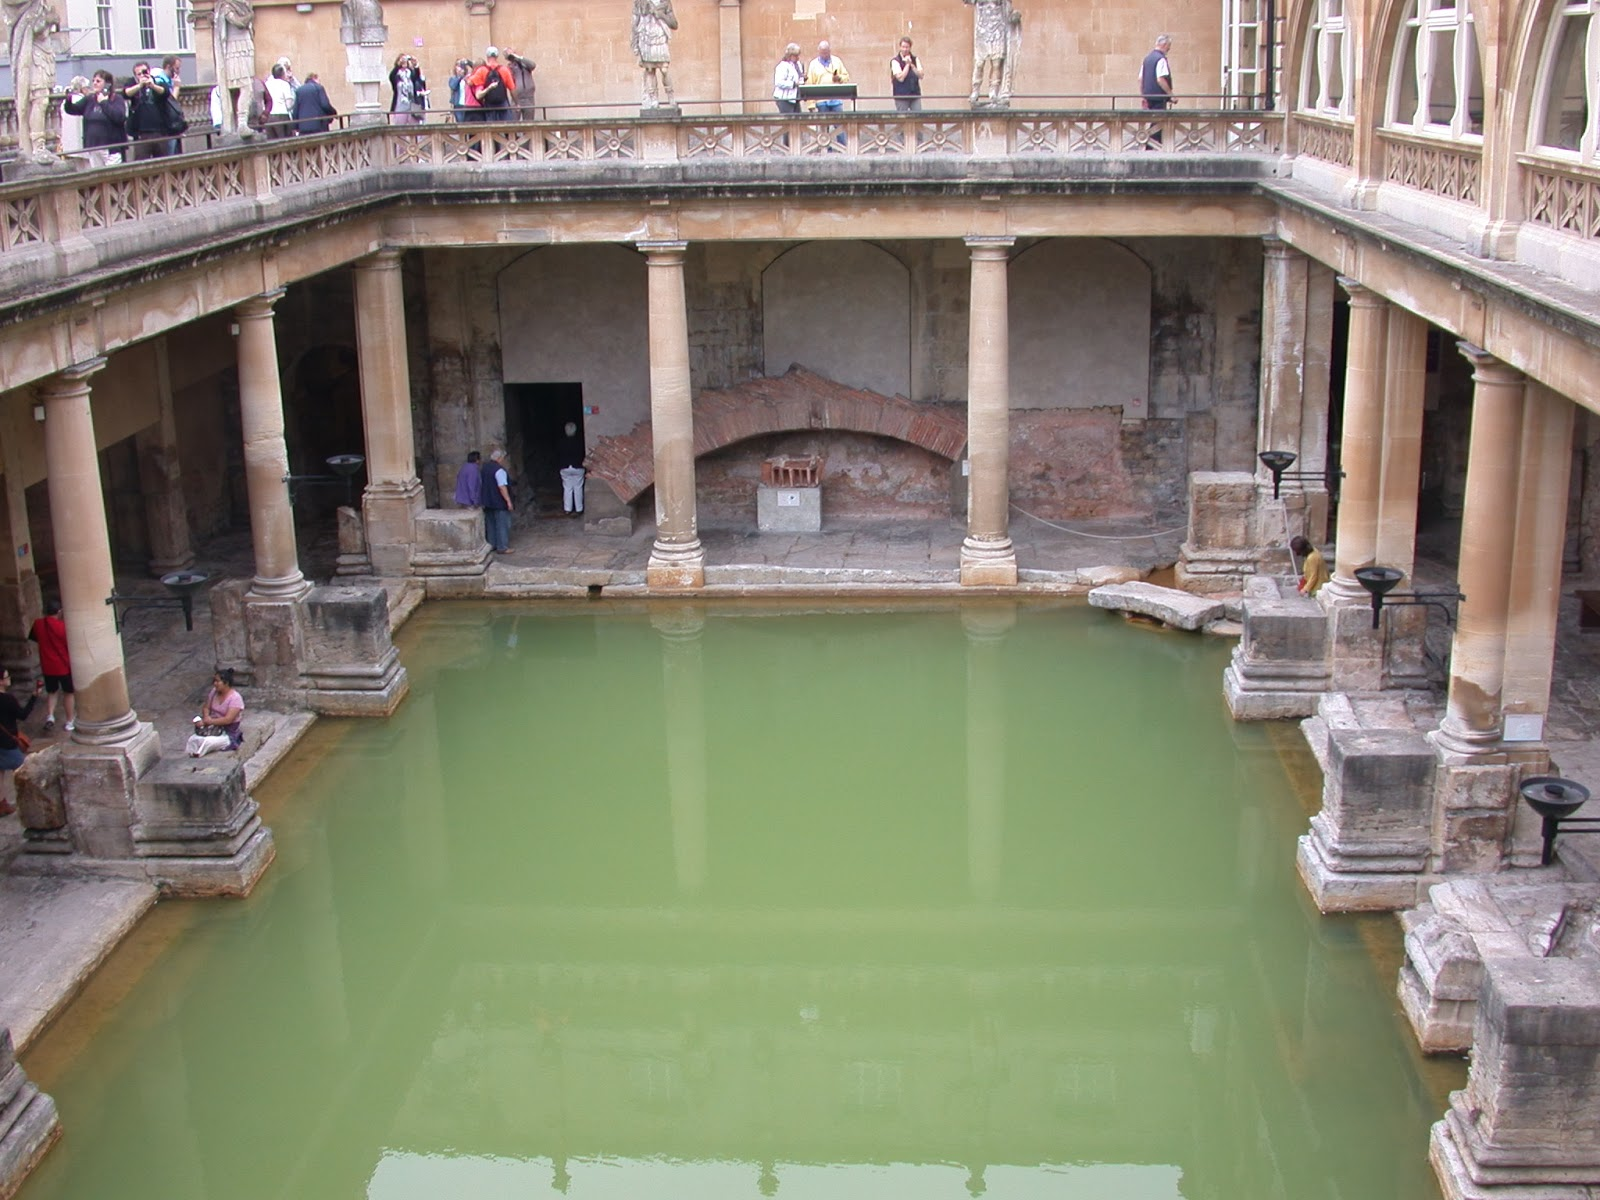 Andrew Simpson: When in Bath, visit the Roman Baths, I did and so ...